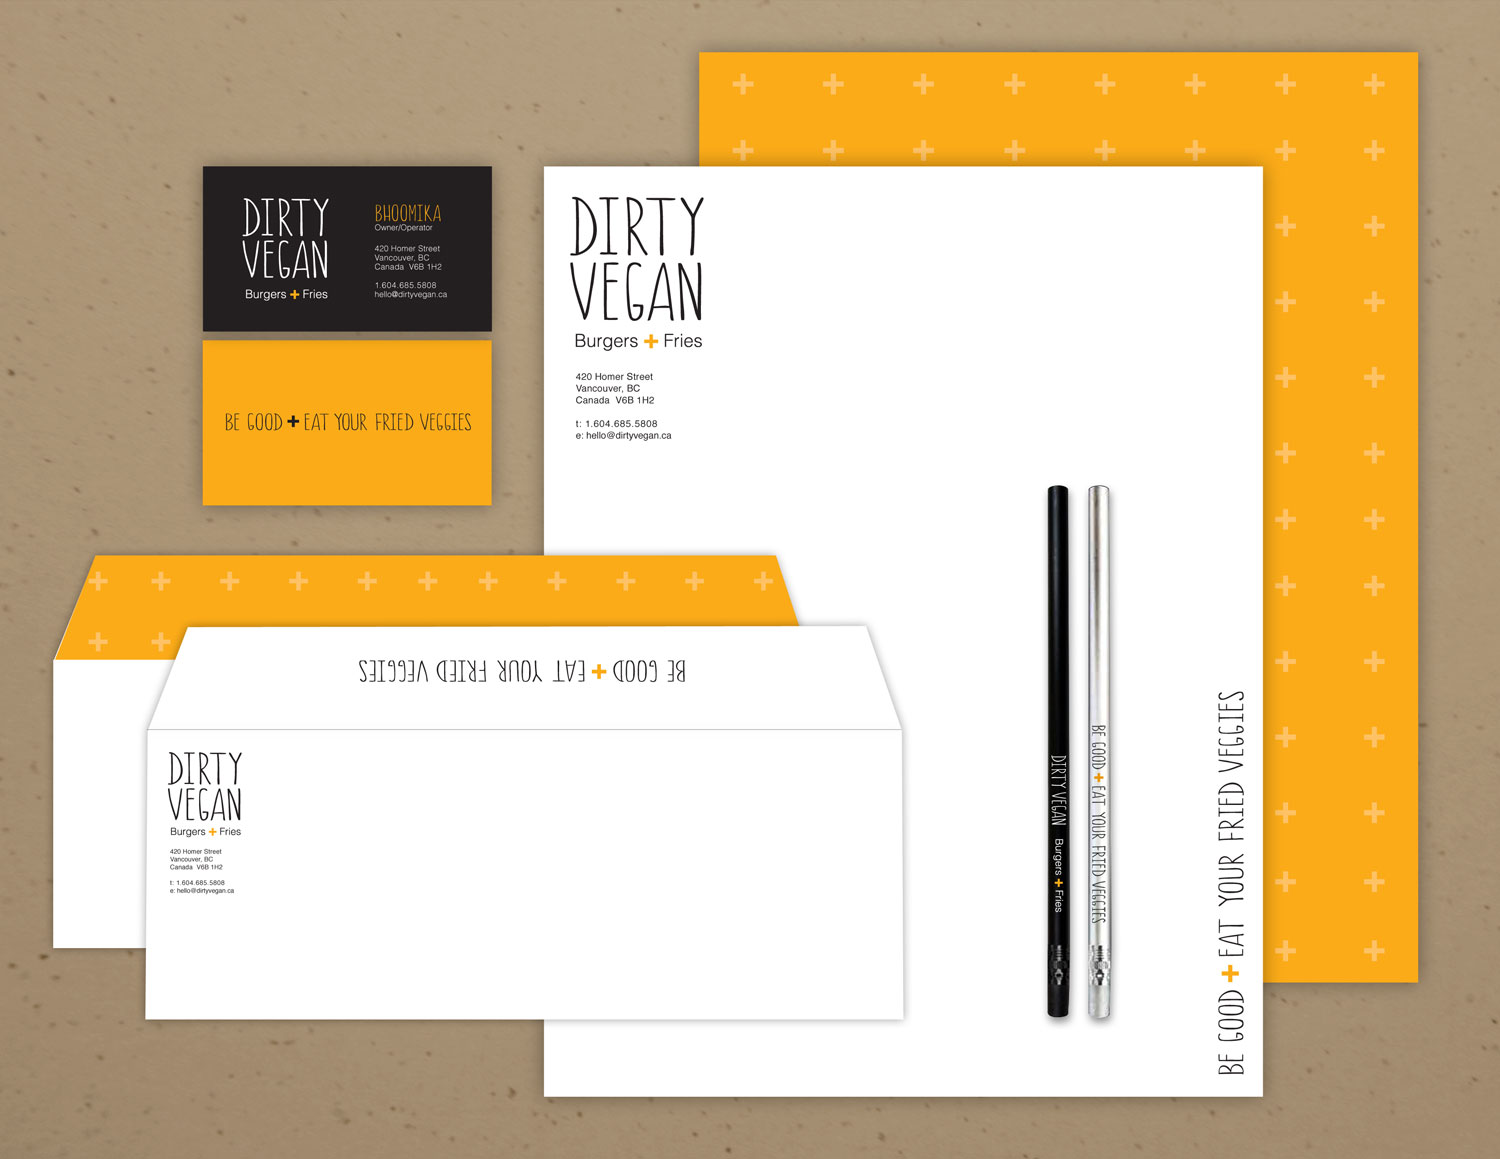 DirtyVegan-stationery1